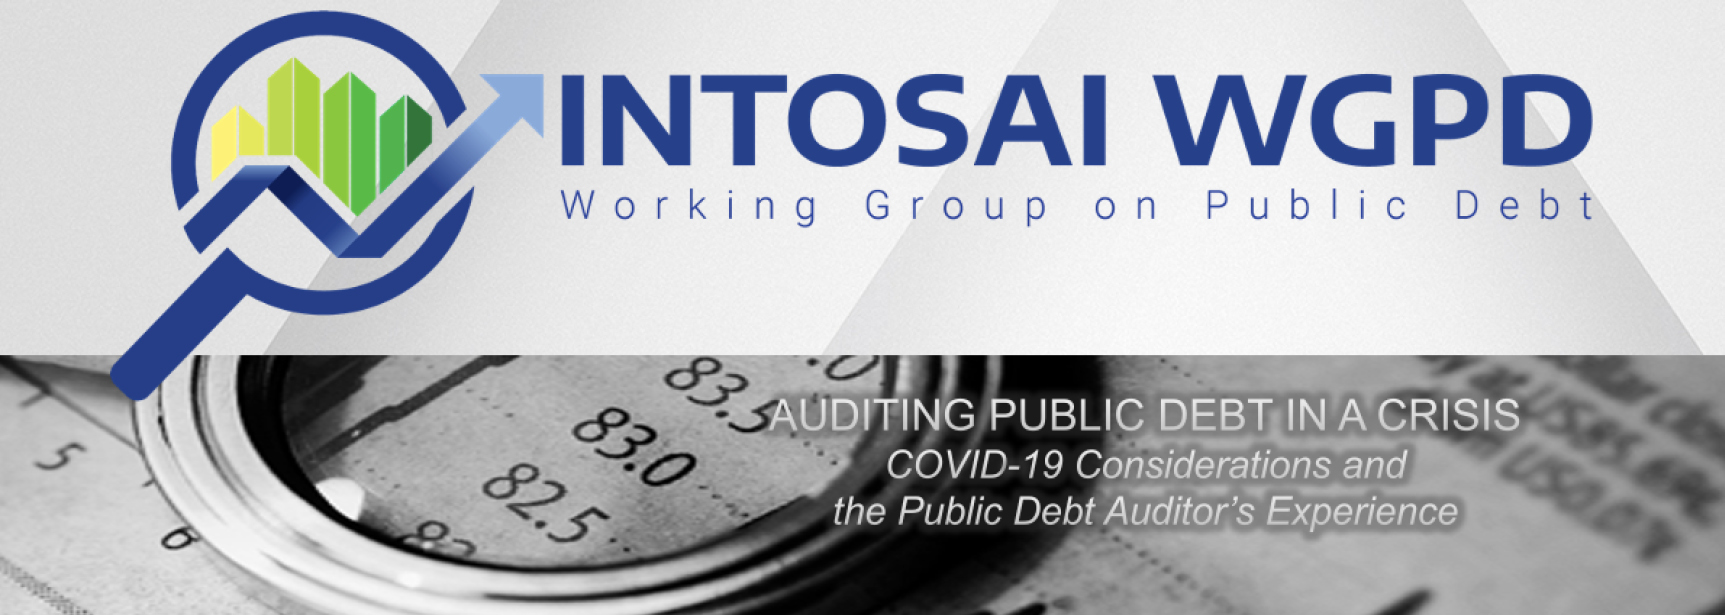 INTOSAI WGPD Holds Annual Meeting, Co-organizes Debt Management Auditors Week